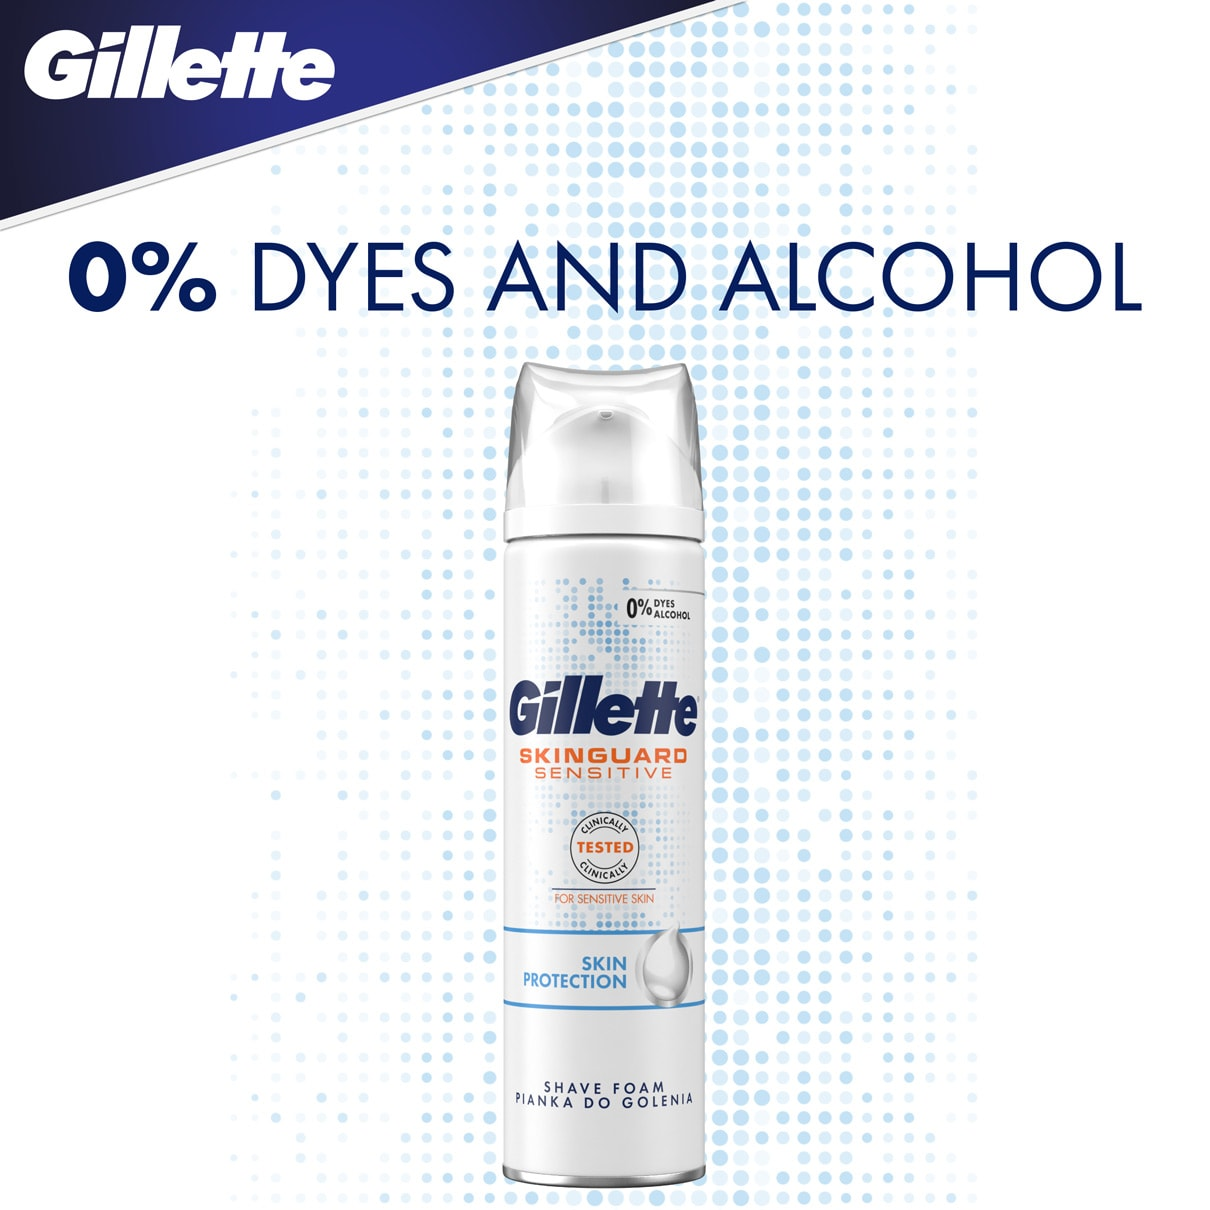 0% dyes and alcohol